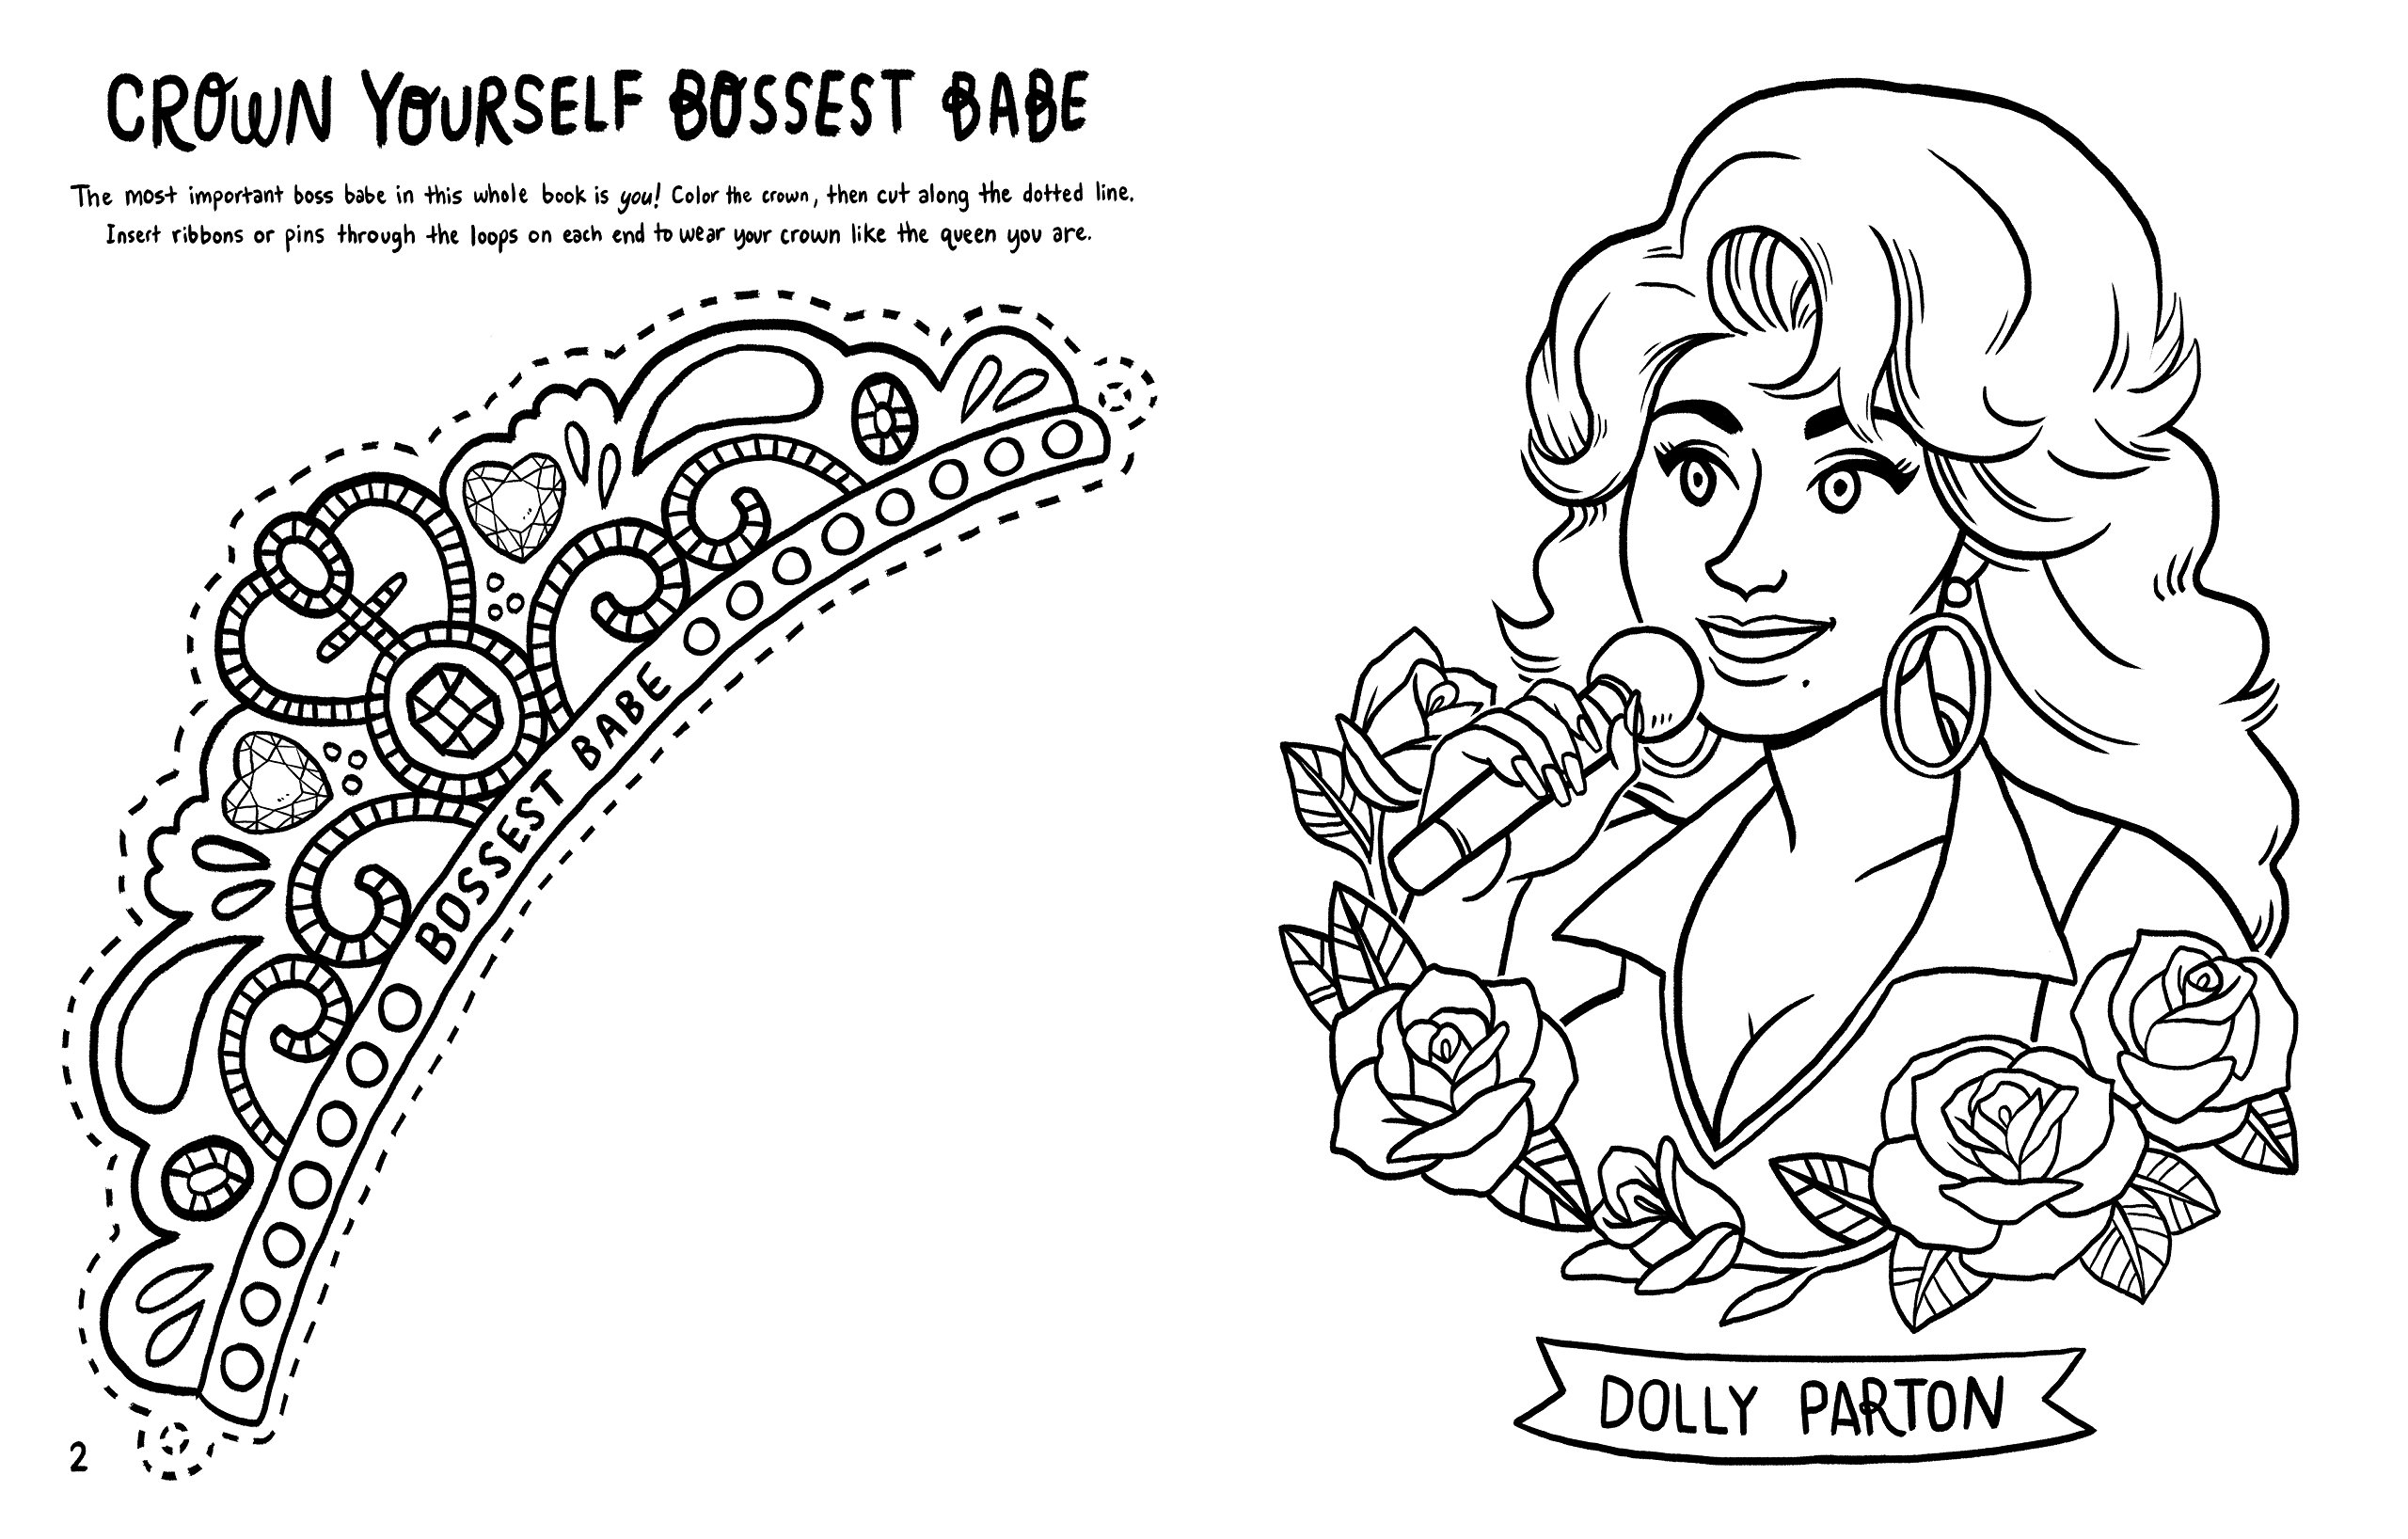 Amazon.com: Boss Babes: A Coloring and Activity Book for Grown-Ups ...